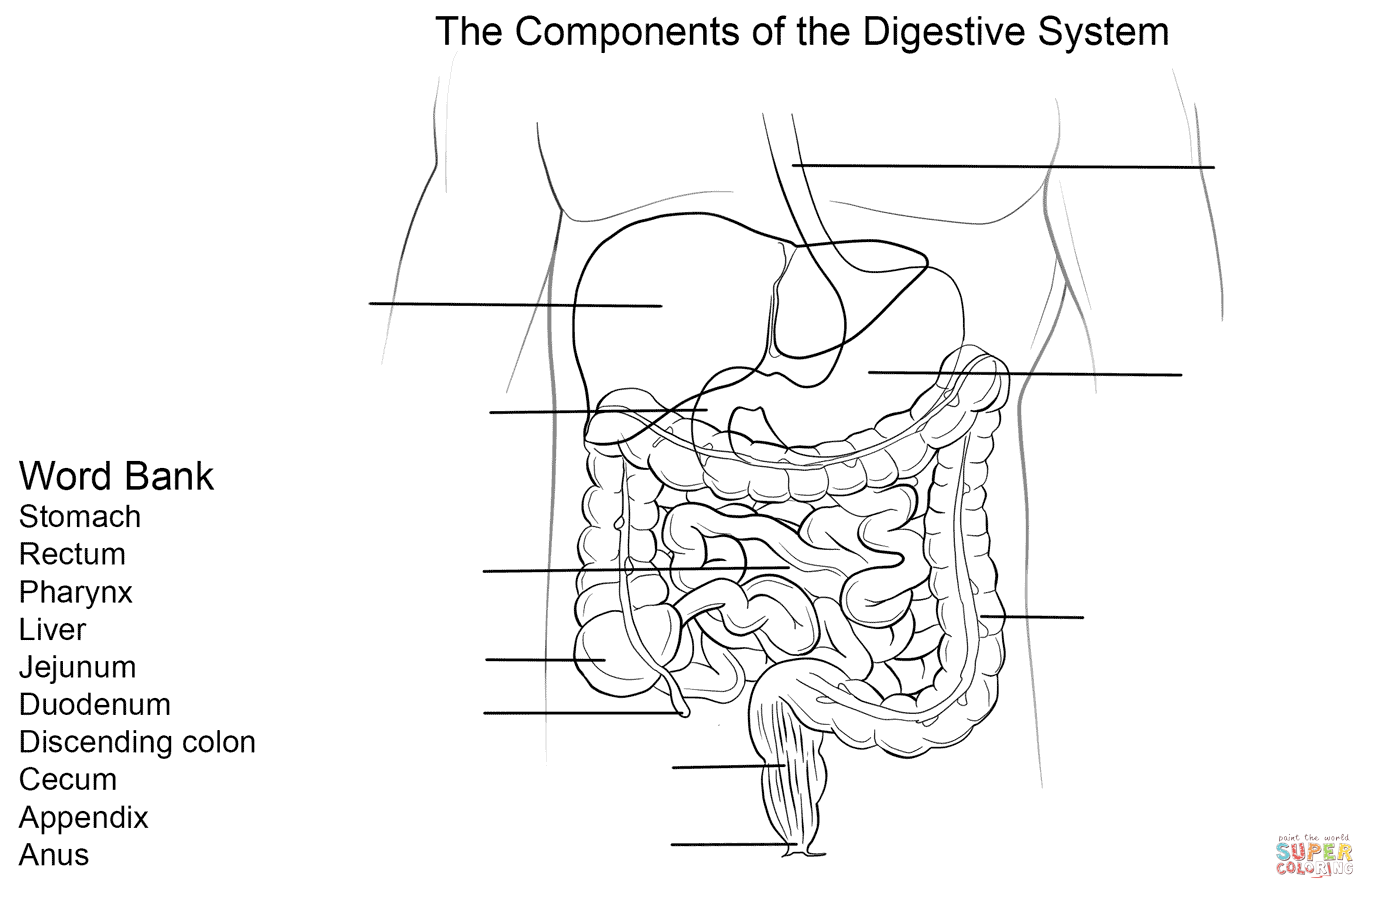 coloring sheet digestive system coloring page digestion system coloring activity by michele rinn tpt coloring digestive sheet system page coloring